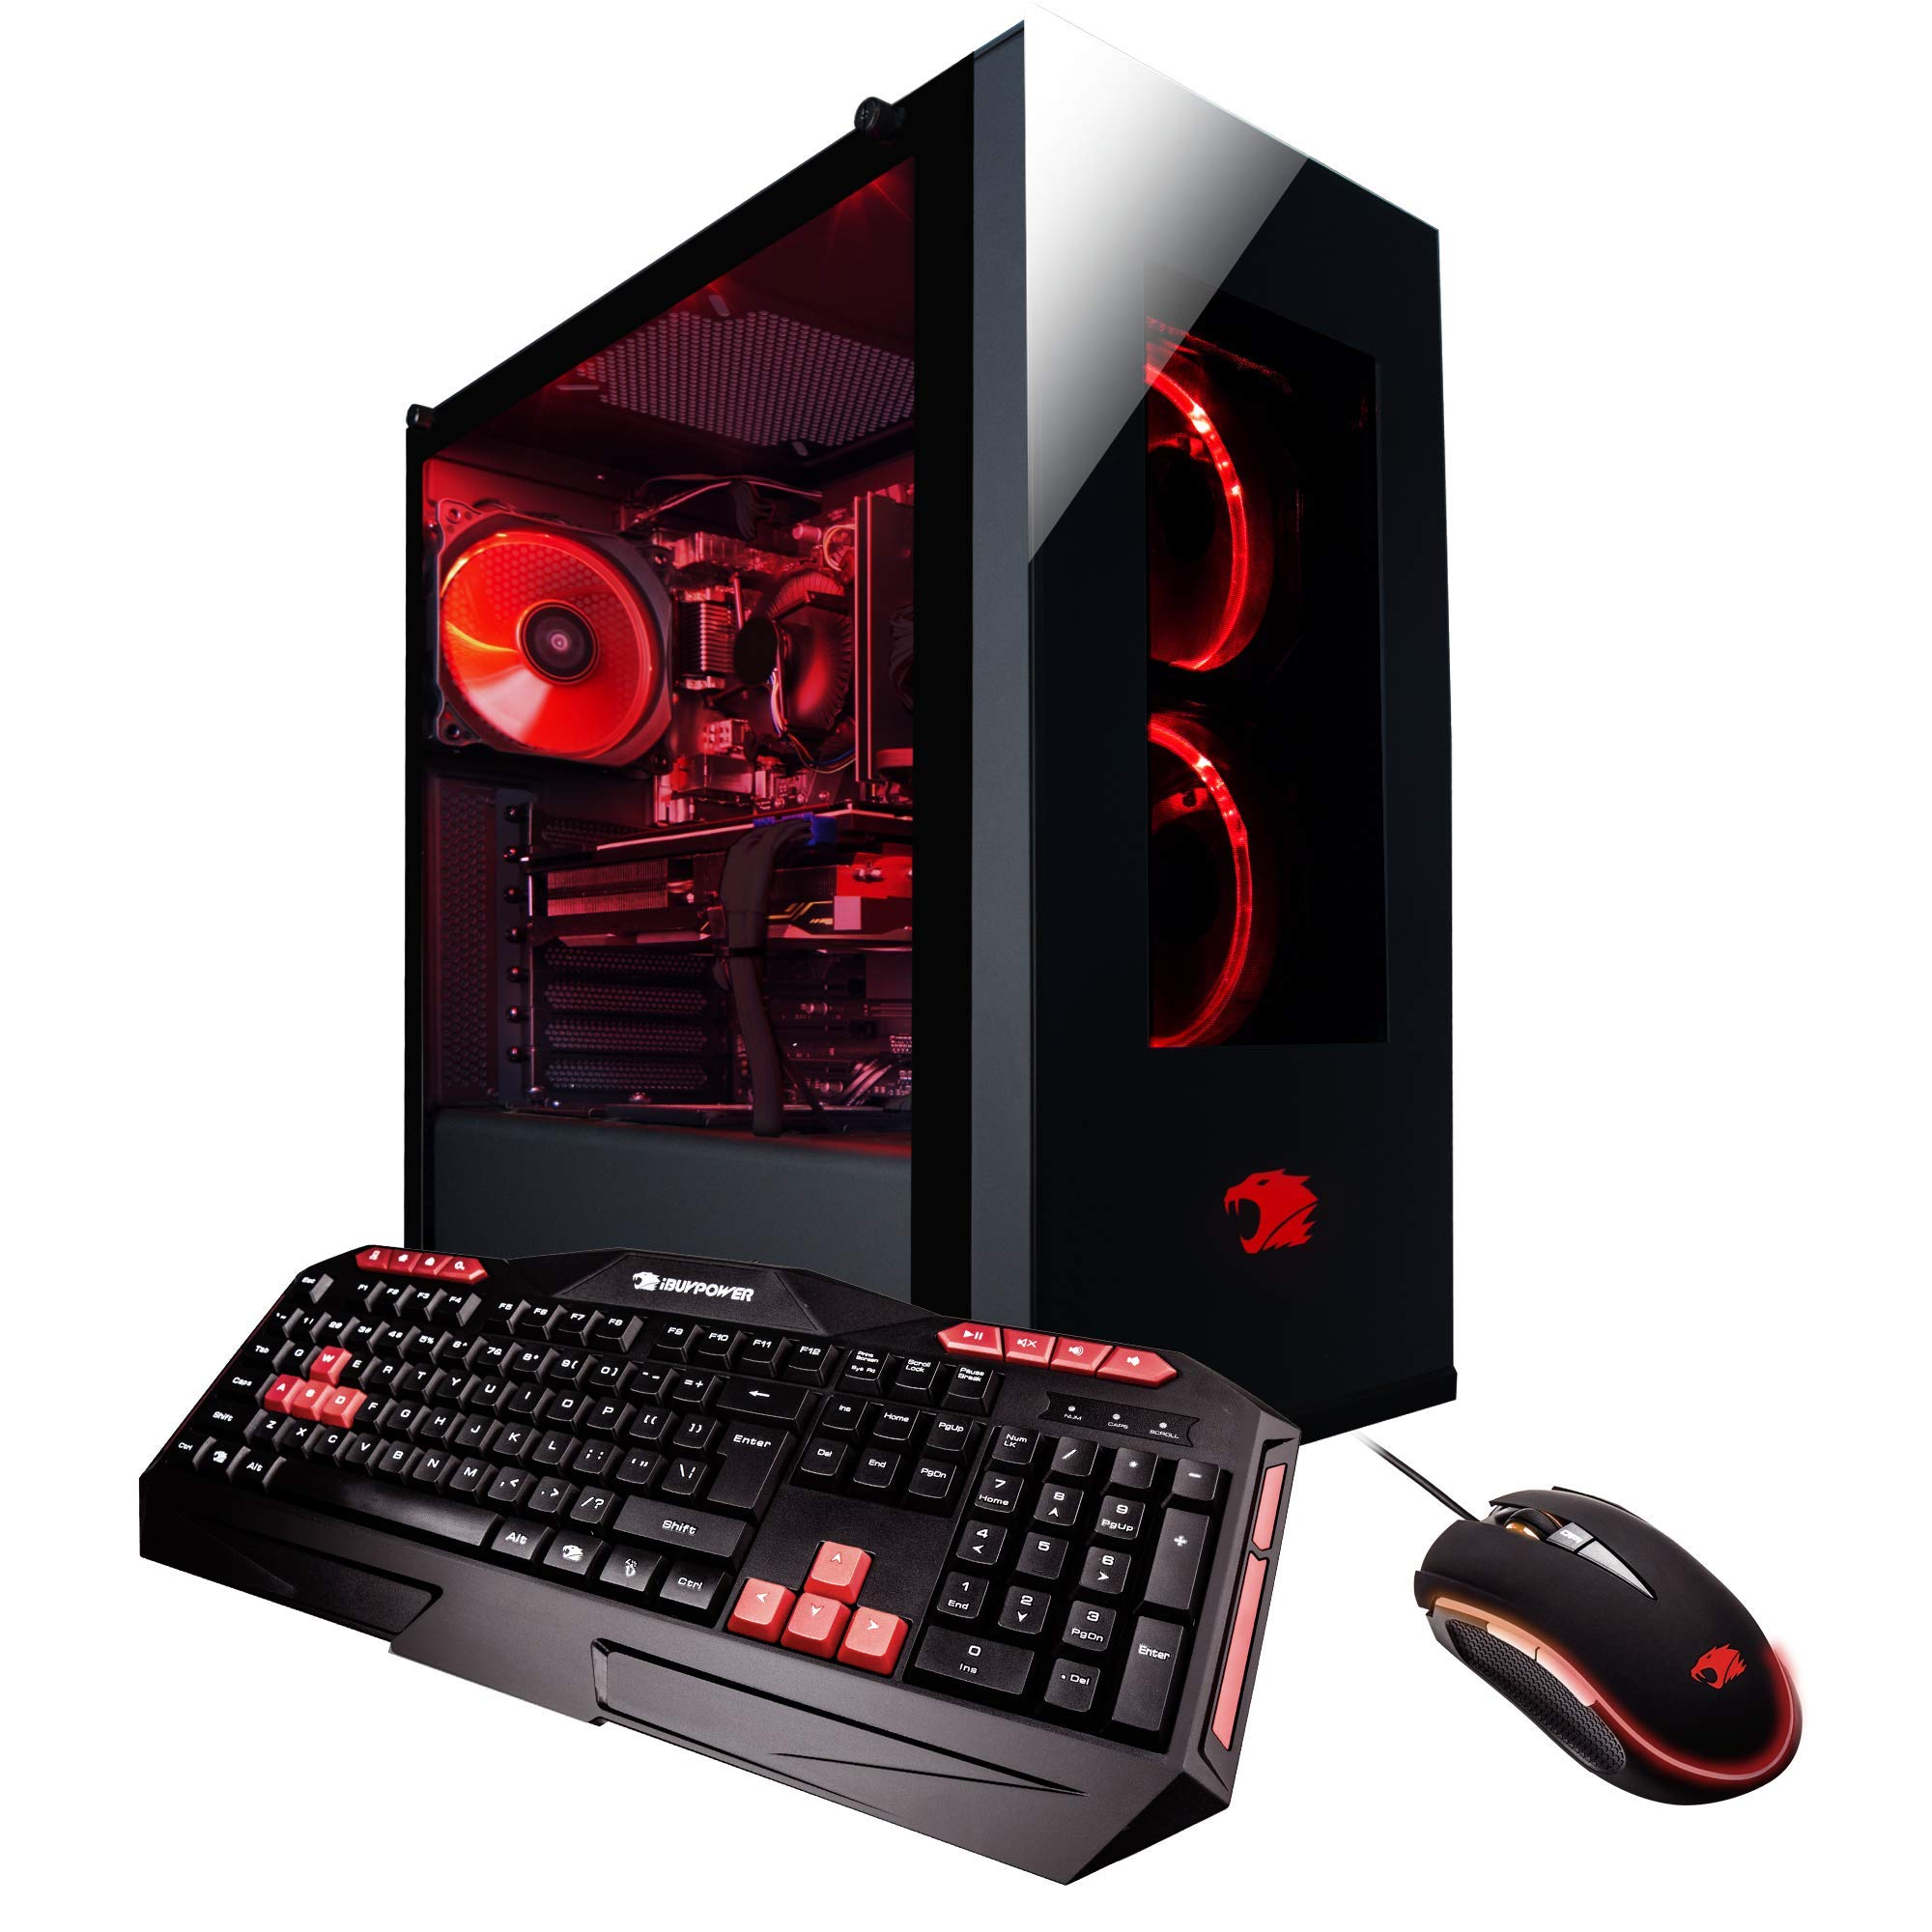 iBUYPOWER Gaming Computer Desktop PC AM006A AMD FX-8320 8-Core 3.5Ghz (